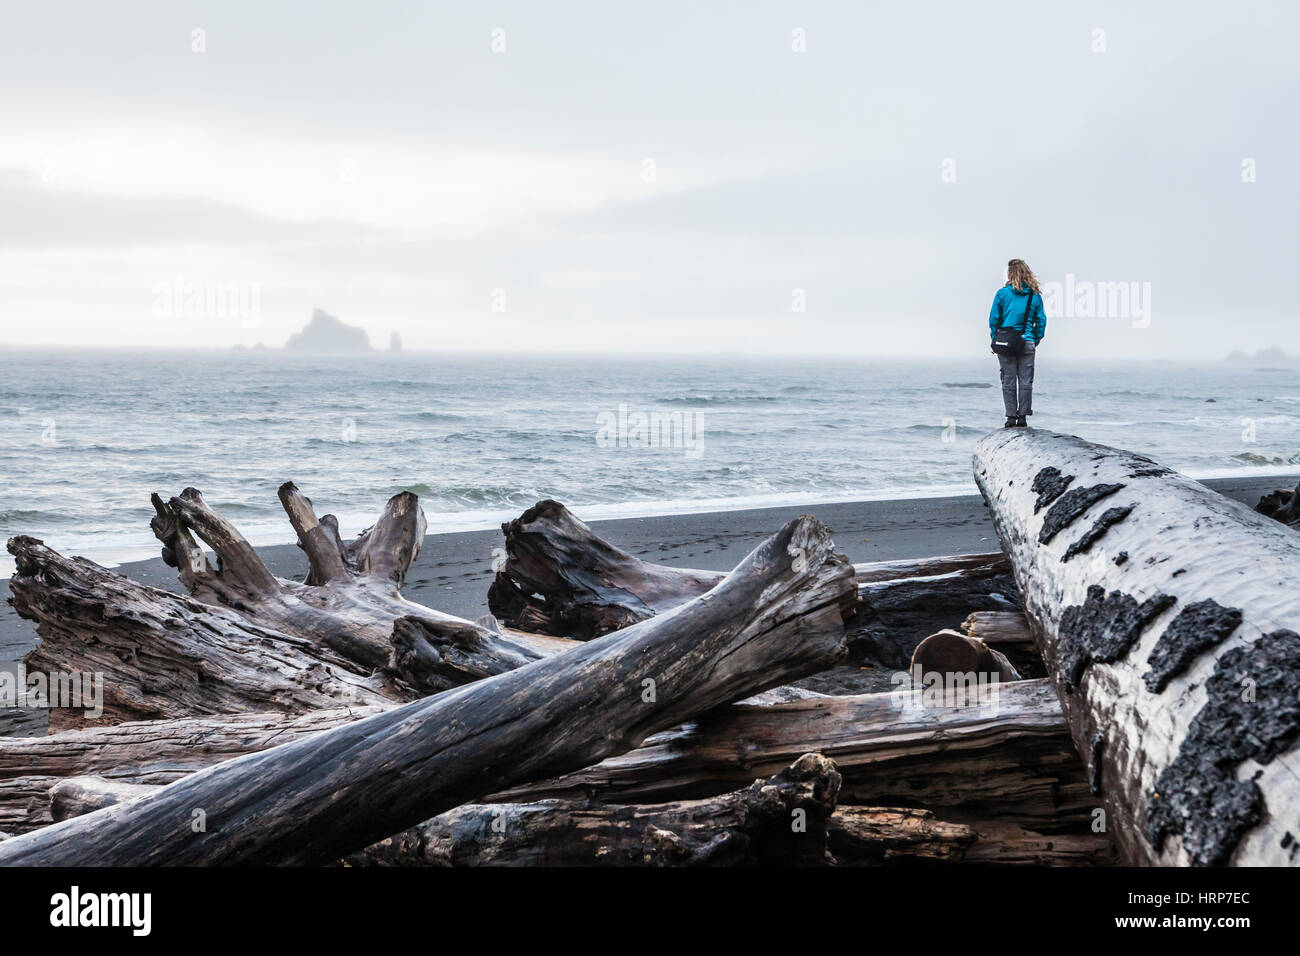 A woman standing at the end of a large driftwood log on Rialto Beach on a foggy overcast day, Olympic National Park, Stock Photo